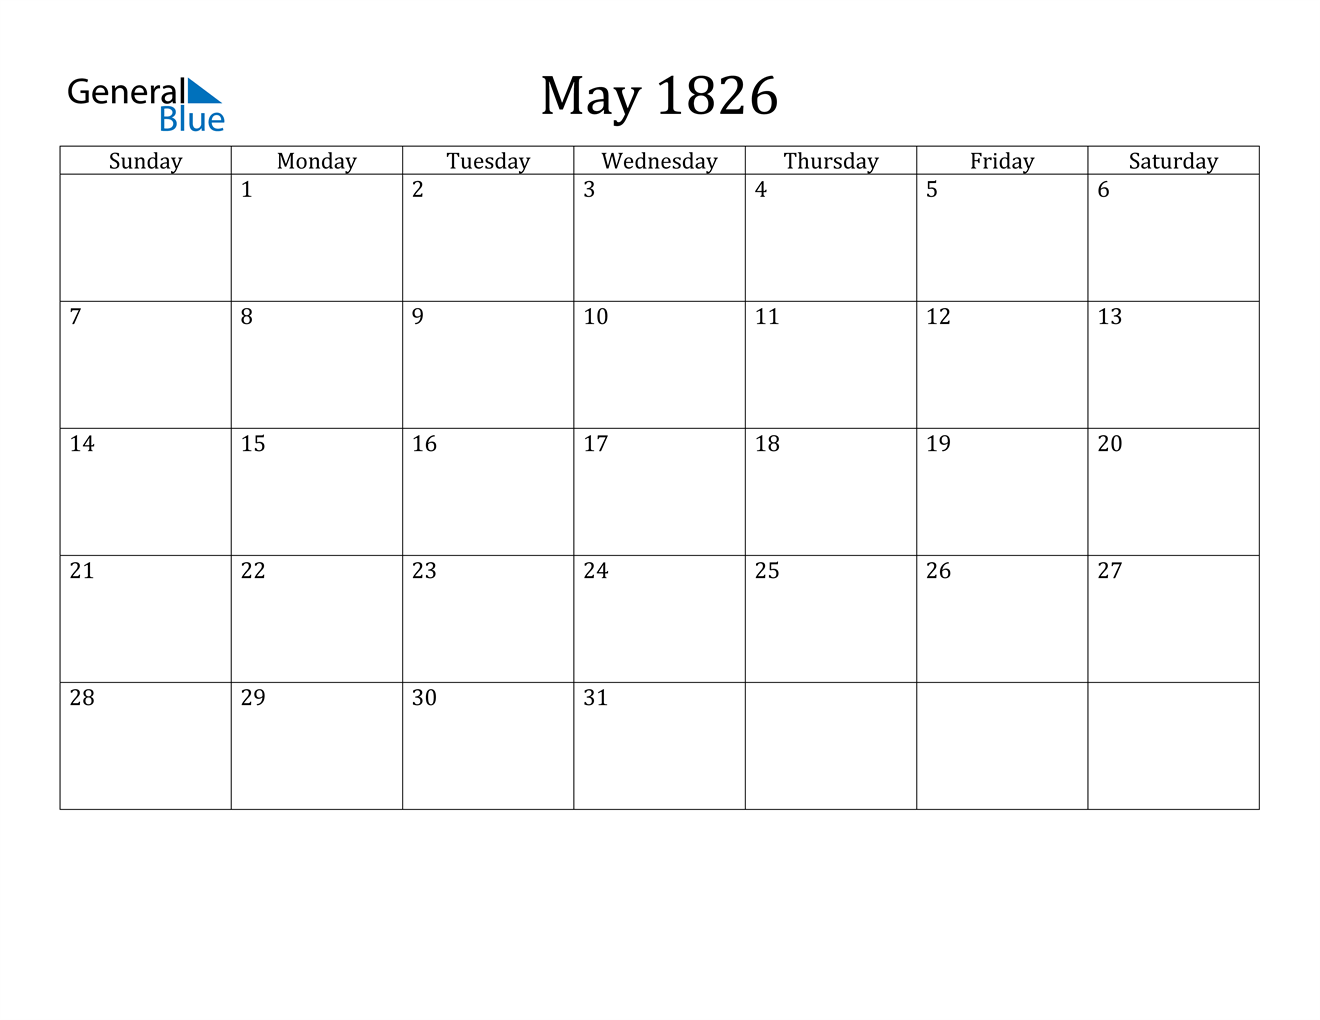 Image of May 1826 Calendar